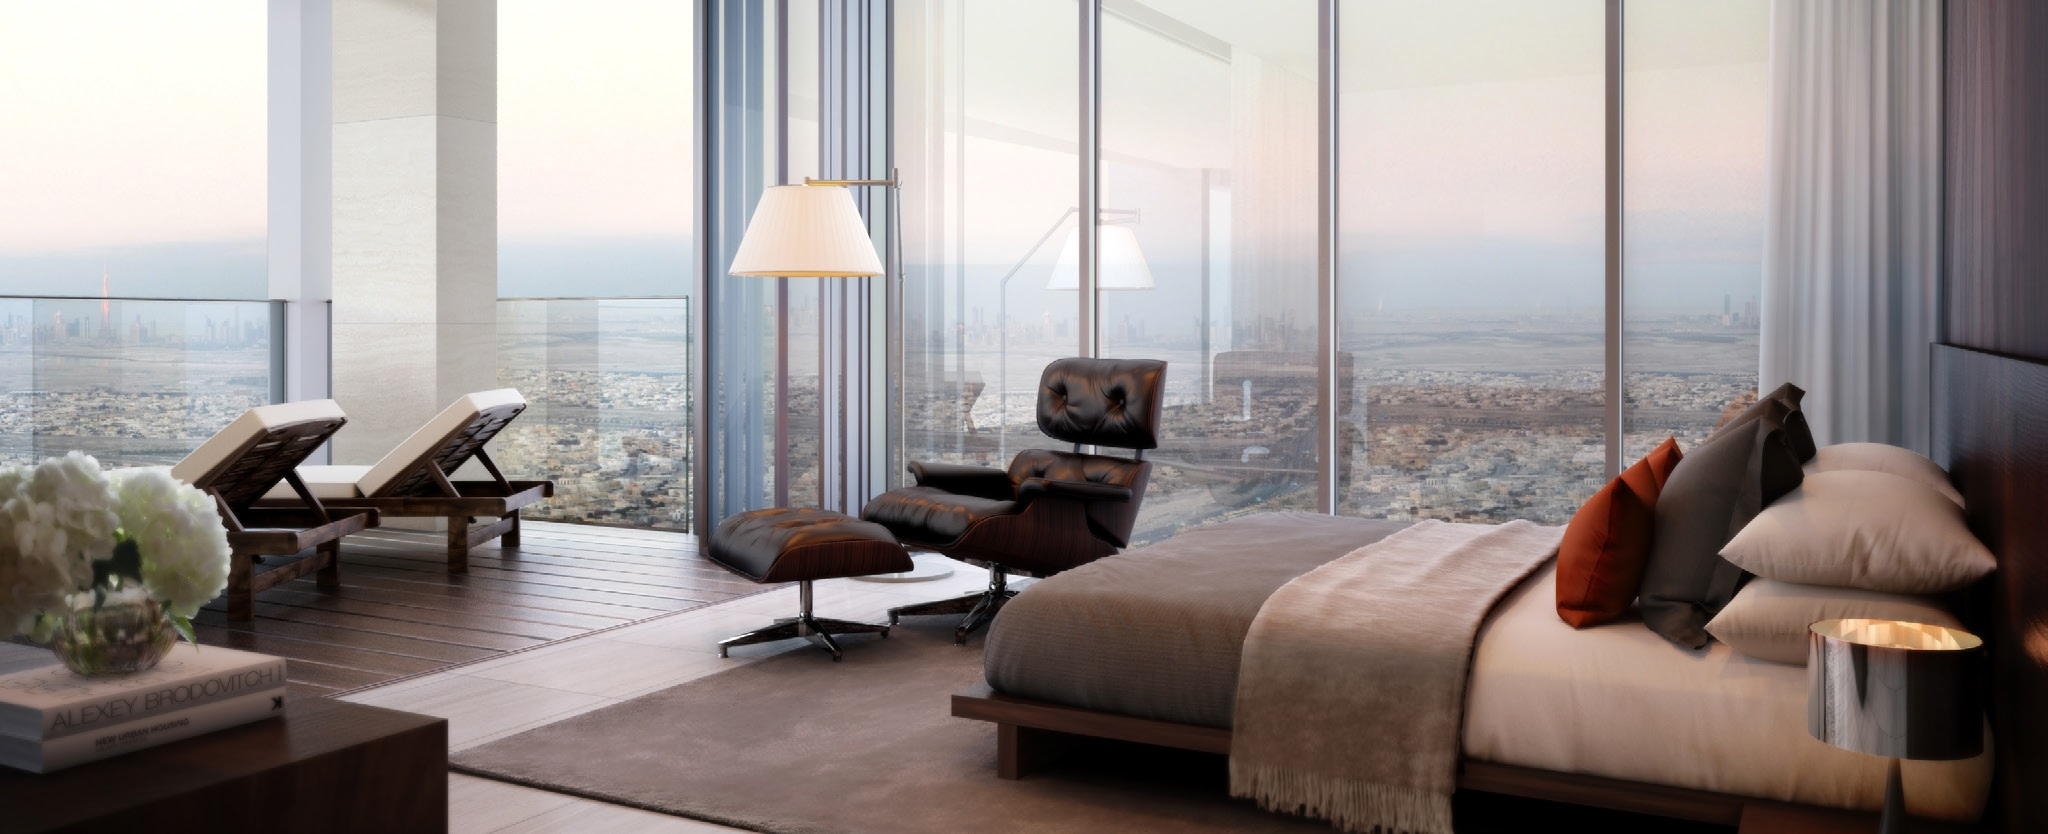 cayan cantara apartment interiors7